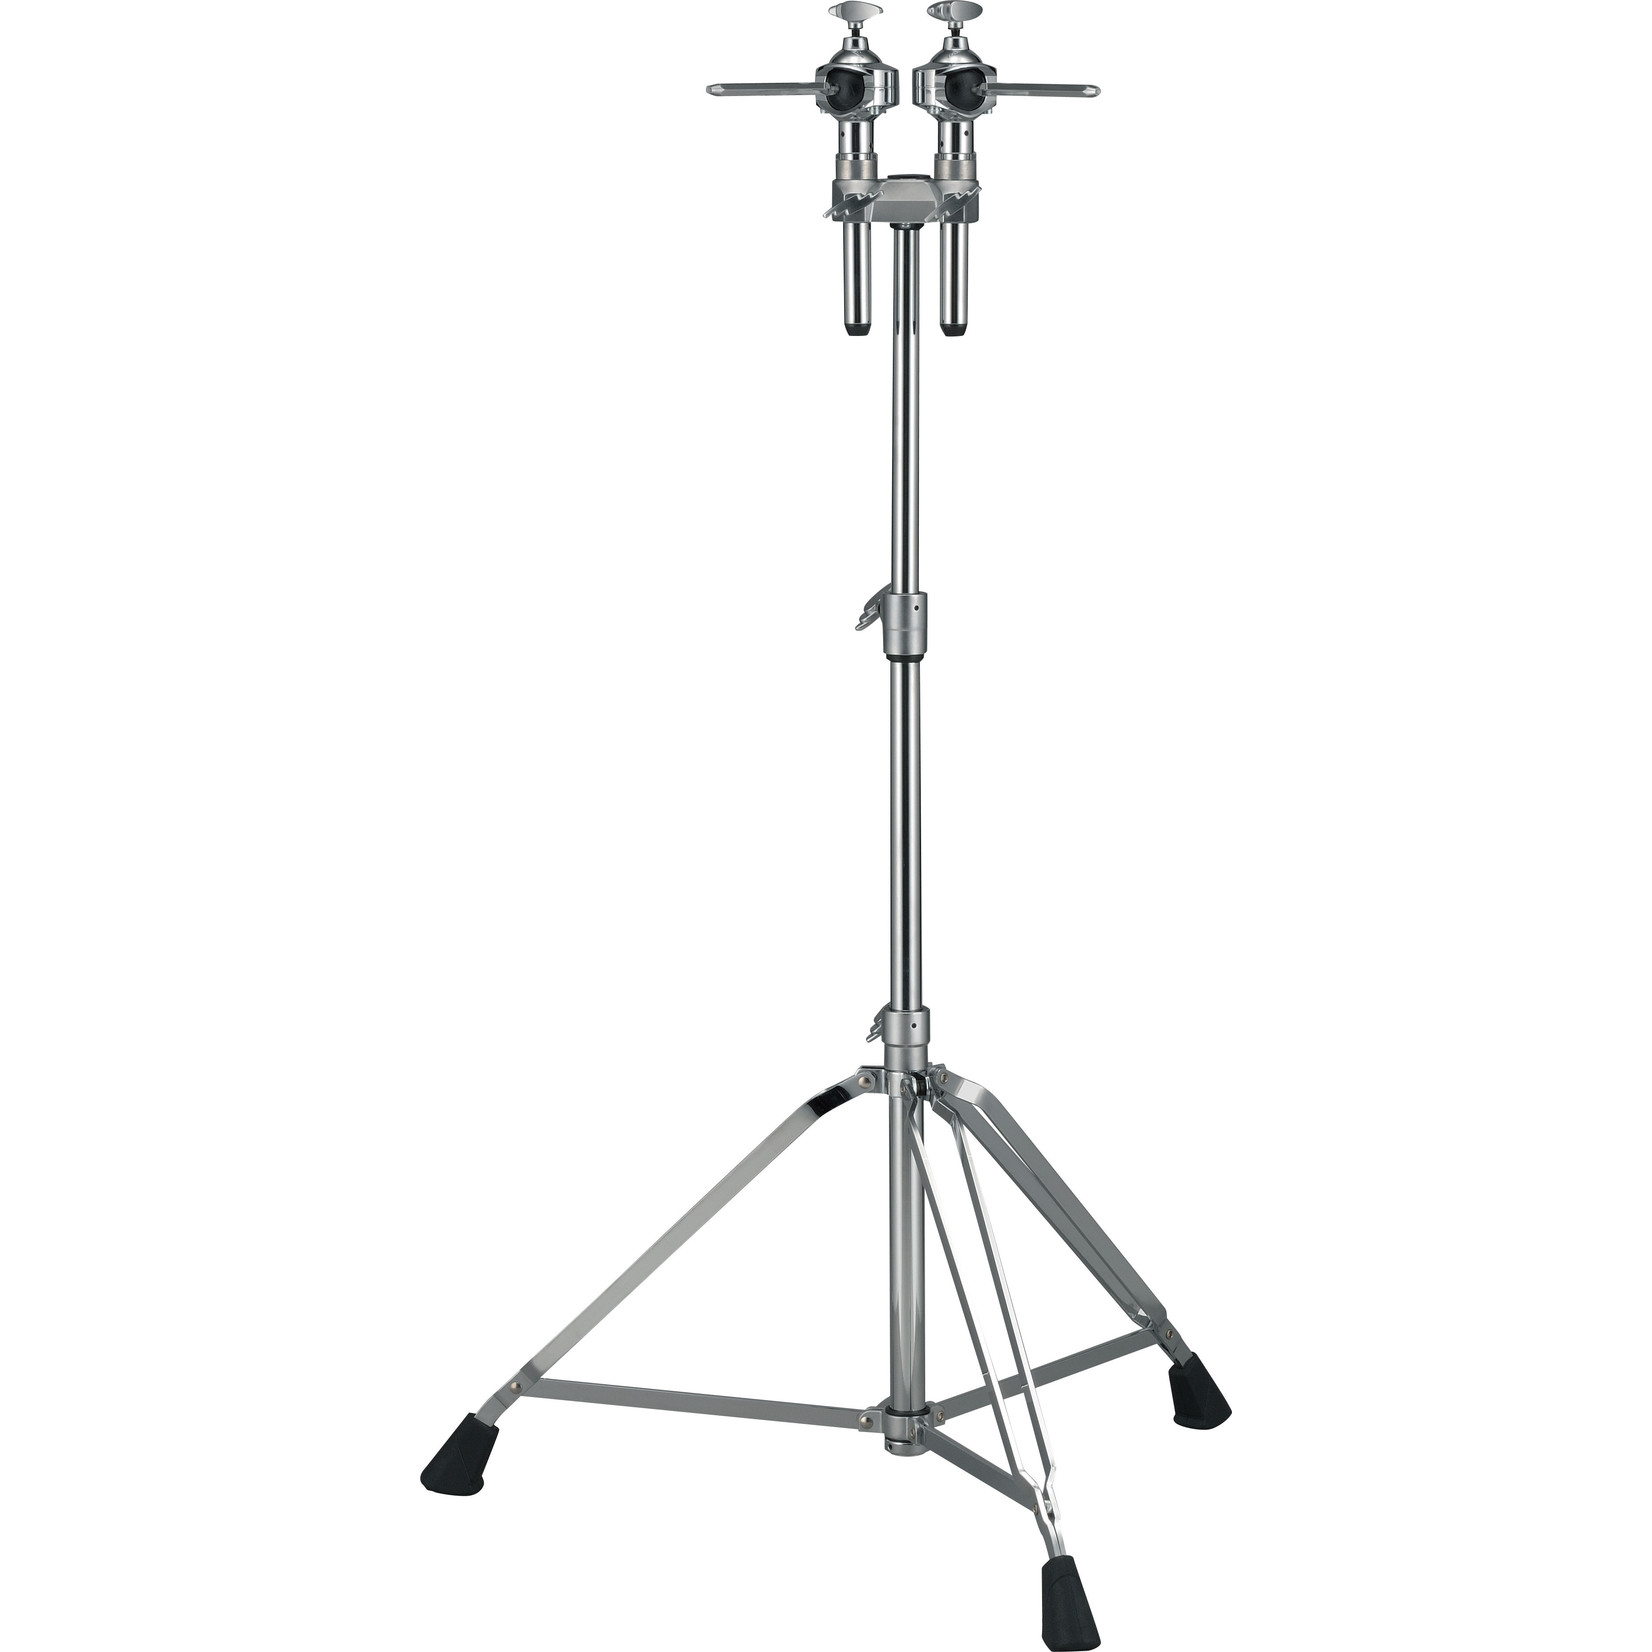 Yamaha Yamaha Double Tom Stands - Heavy Weight - Double Braced - Included CL-940B (2)